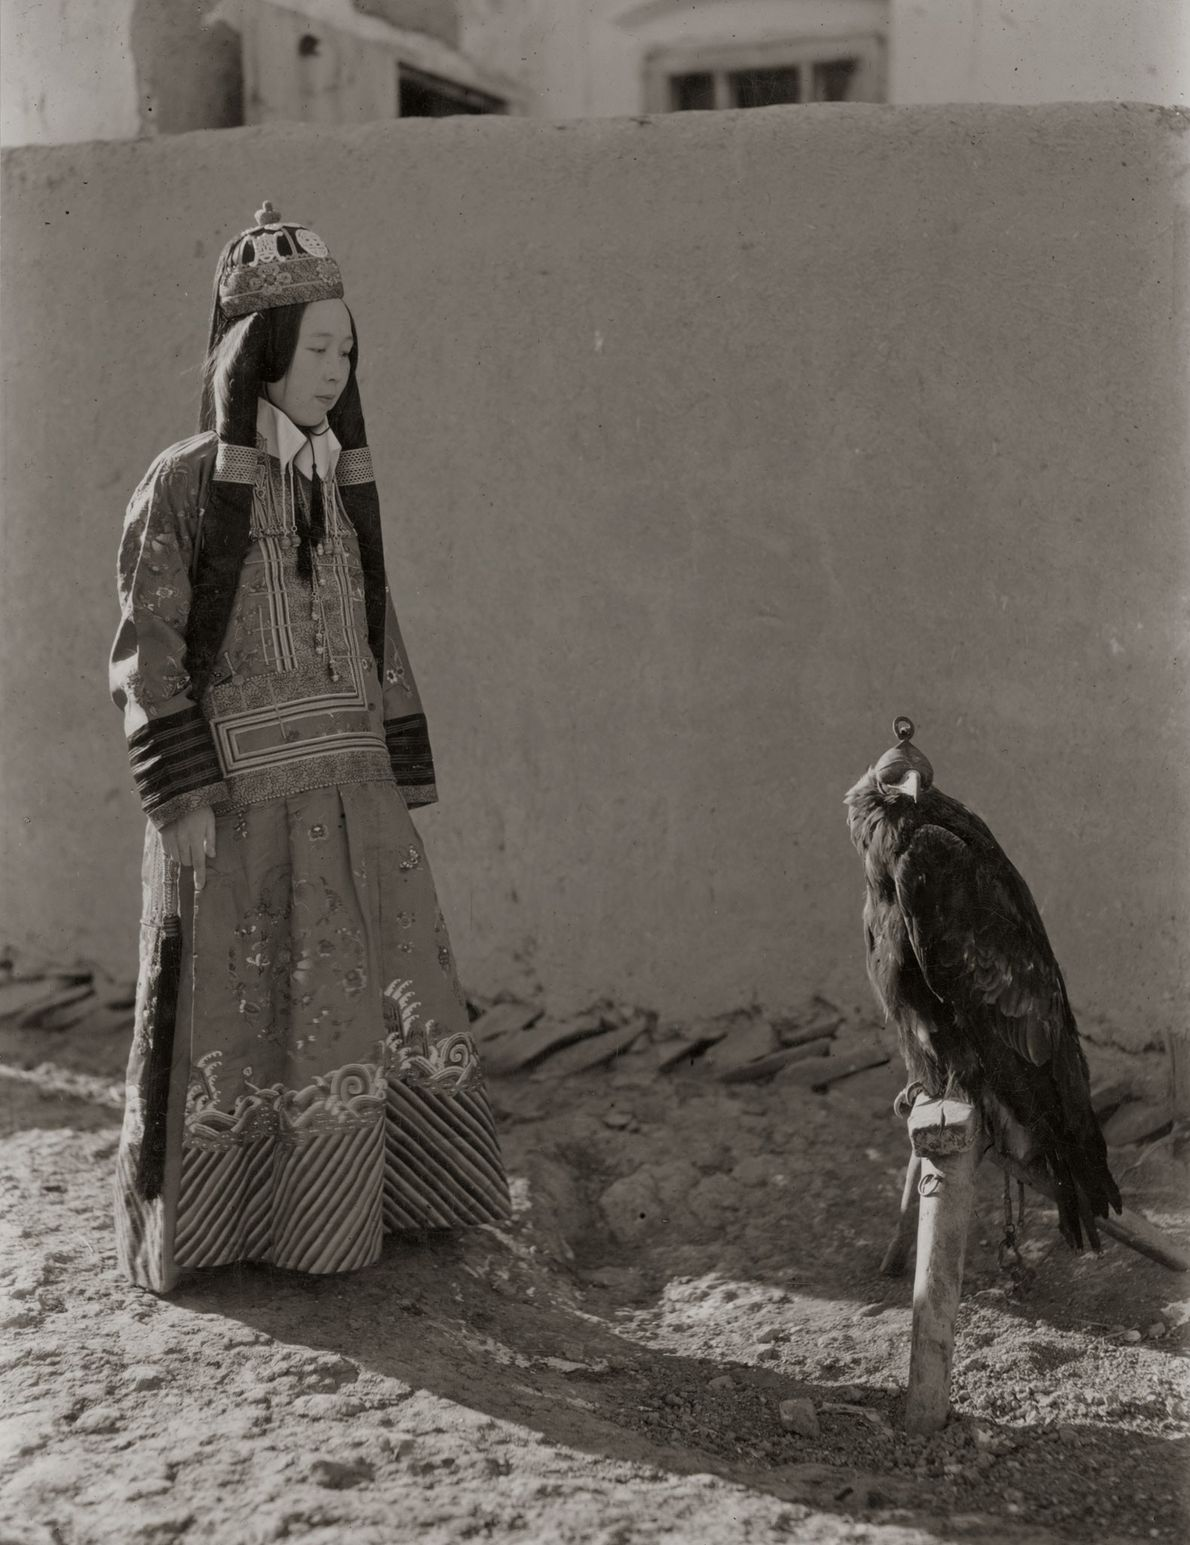 Chinese Princess Nirgidma stares down her eagle in 1932.